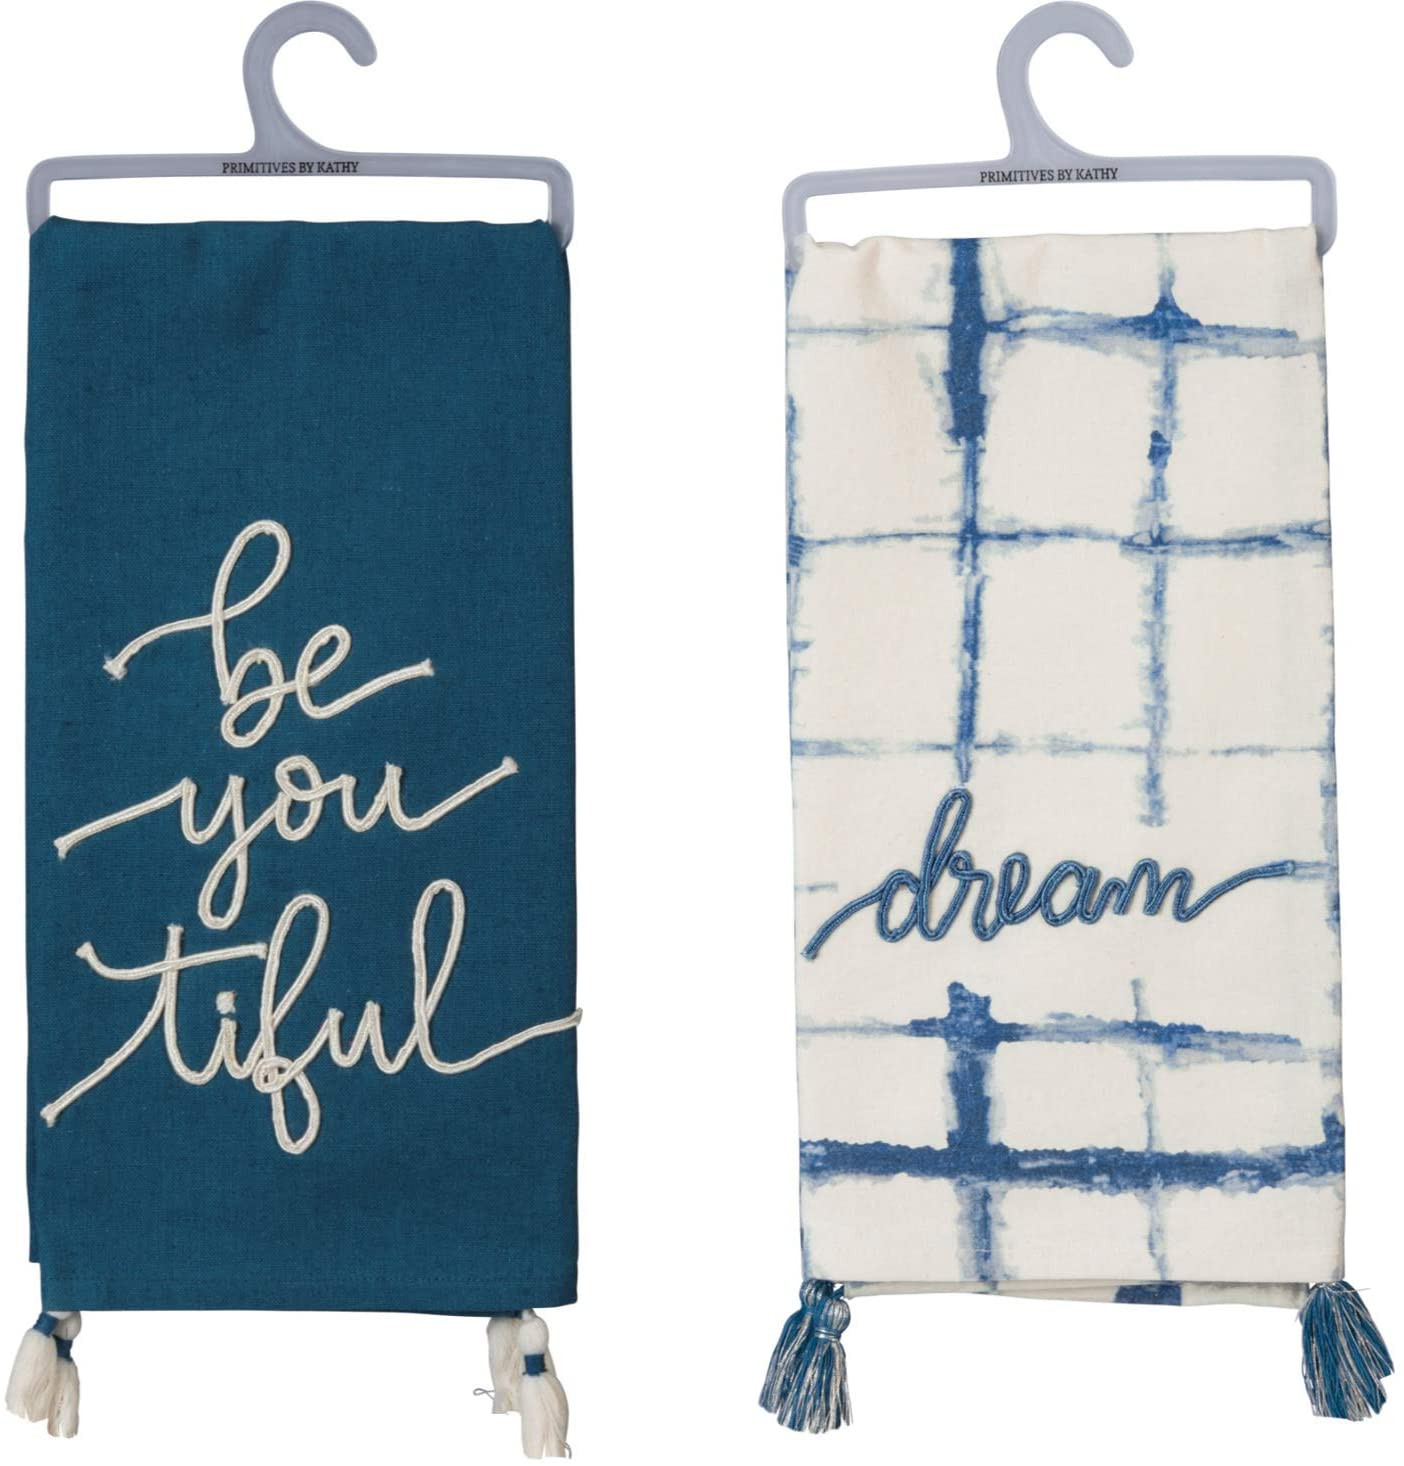 Primitives by Kathy Kitchen Dish Towel Set | Bundle Includes: (1) Cream and Indigo Dish Towel with Dream Stitched on The Front, and (1) Indigo Dish Towel with be You Tiful Stitching